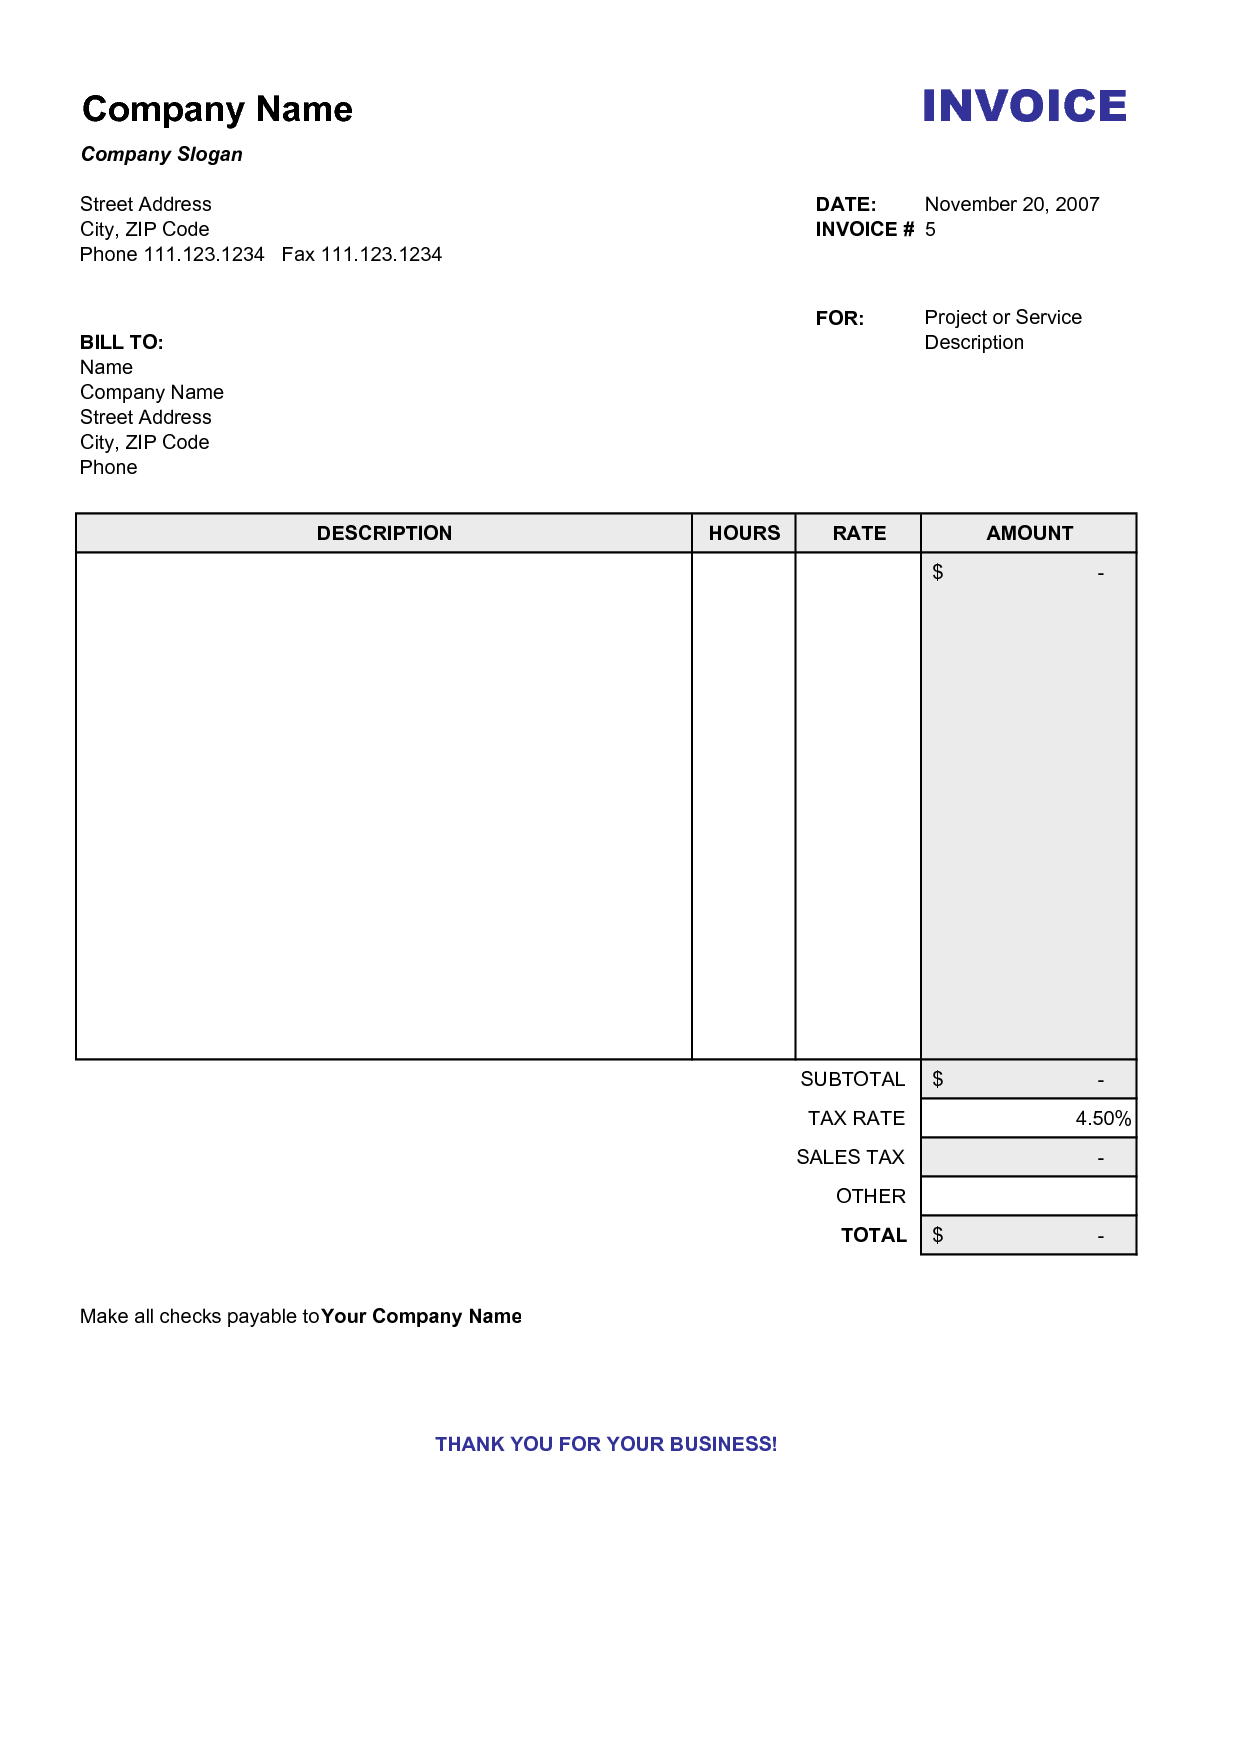 Blank Billing Invoice Scope Of Work Template Organization - Office invoice template excel for service business